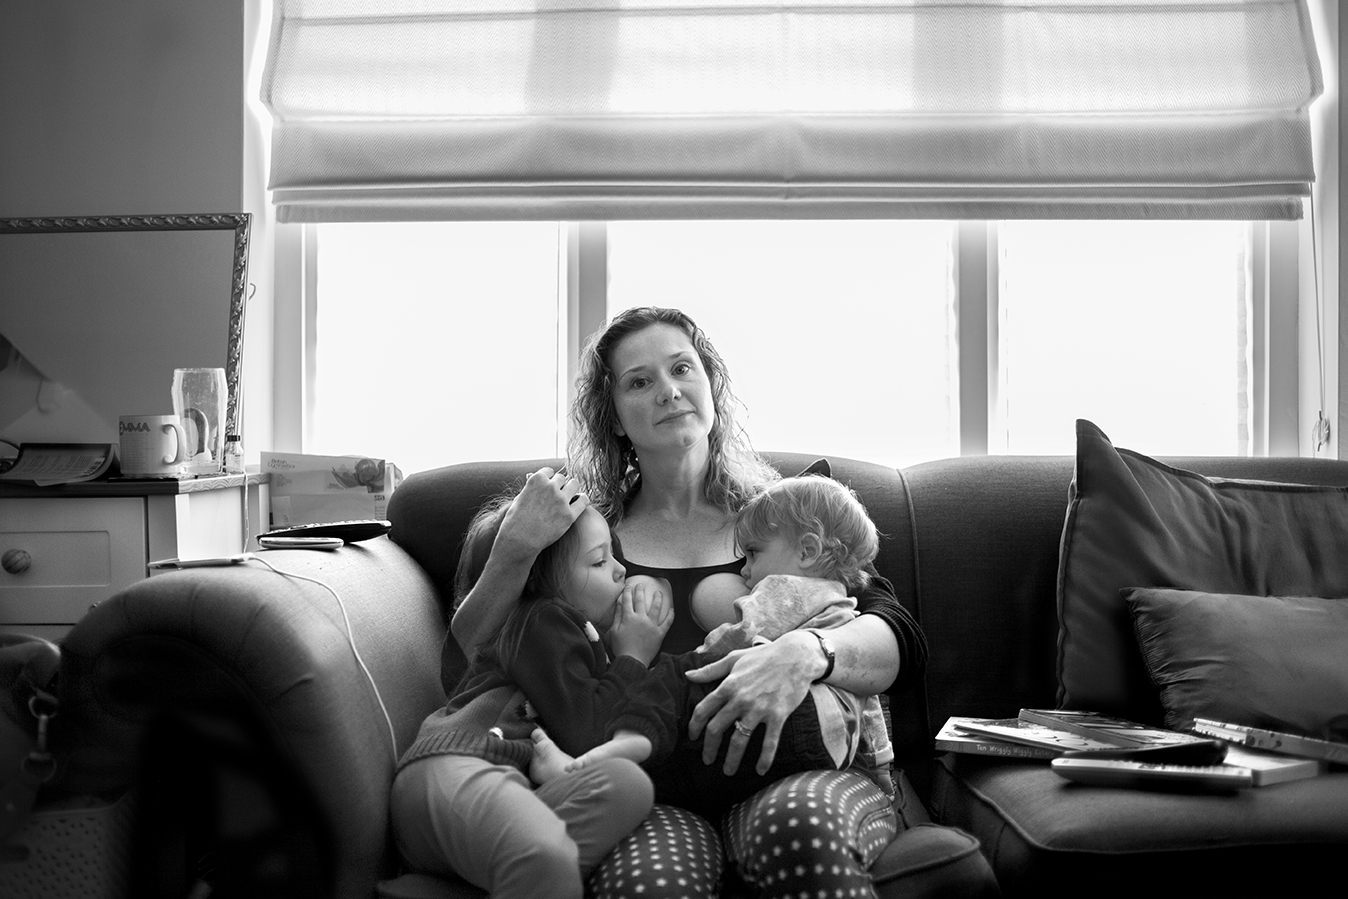 """My breastfeeding relationship has been all about learning and working.     With my daughter I was in agony for ten weeks. We never really worked out why. But I kept going and suddenly it became pain free. So we carried on to three months, then six, then a year and then I couldn't see a point in stopping when it was now so easy and such a great parenting tool. It calms tantrums (toddler and beyond!) so quickly and easily, offers comfort, and is a space to just be for both of us. Now she's six it's infrequent. Her adult teeth are coming in, her jaw shape is changing. She actually can't get milk any more. But still asks to nurse to reconnect, chill out, and just be close. She will stop when she's ready.     I didn't plan this. I told a friend ""I'm not going to be like you, feeding a child at school"", but actually it's easy and natural and normal (biologically speaking) and the gift of natural term weaning is one of the greatest I can give to my child.     My son is 16 months, still tiny and loves feeding. He had a tongue tie so it was very hard for the month before it was cut. Painful, with him not getting enough. One day we had no wet nappies at all. But I kept going and trusted my body and once the tie was cut he latched on and within a few days would suck for comfort and not just food. It felt like a miracle. But then birth and breastfeeding are miracles.     I feed in public. Any time, anywhere. I walk around places with my boy in my arms, latched on, while I chat to people, order coffee, tidy up, whatever. I fed my daughter in public till she was three, then I felt conscious. But this time I will feed in public longer. I feel more confident about natural term weaning now. I love being able to tandem feed. Sometimes they hold hands. Sometimes my son tries to unlatch his sister, poking his finger in her mouth, or pokes her eyes. He shares his boobs reluctantly!    My mum fed me till I was five months. I didn't ever consider any other way to feed my babies. I trust my body to feed them. Formula was never an option. I have friends who would wet nurse for me, and I for them, if it was ever necessary.     My advice to others? Just do it. Other people's opinions don't matter. Not even your partner's. Get the right support and do what's right for you and your child."""